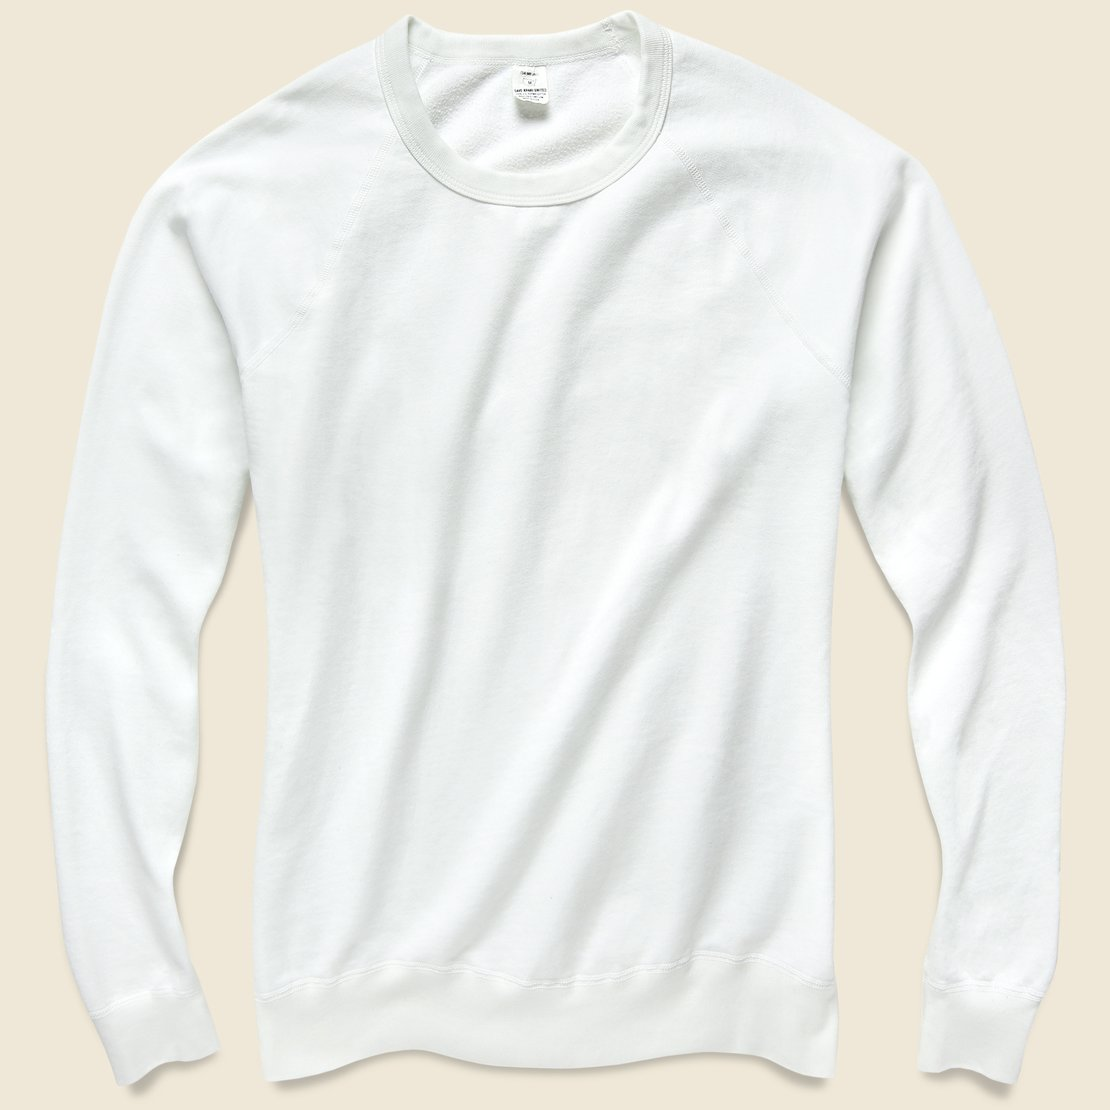 Save Khaki Supima Beach Crew Sweatshirt - White